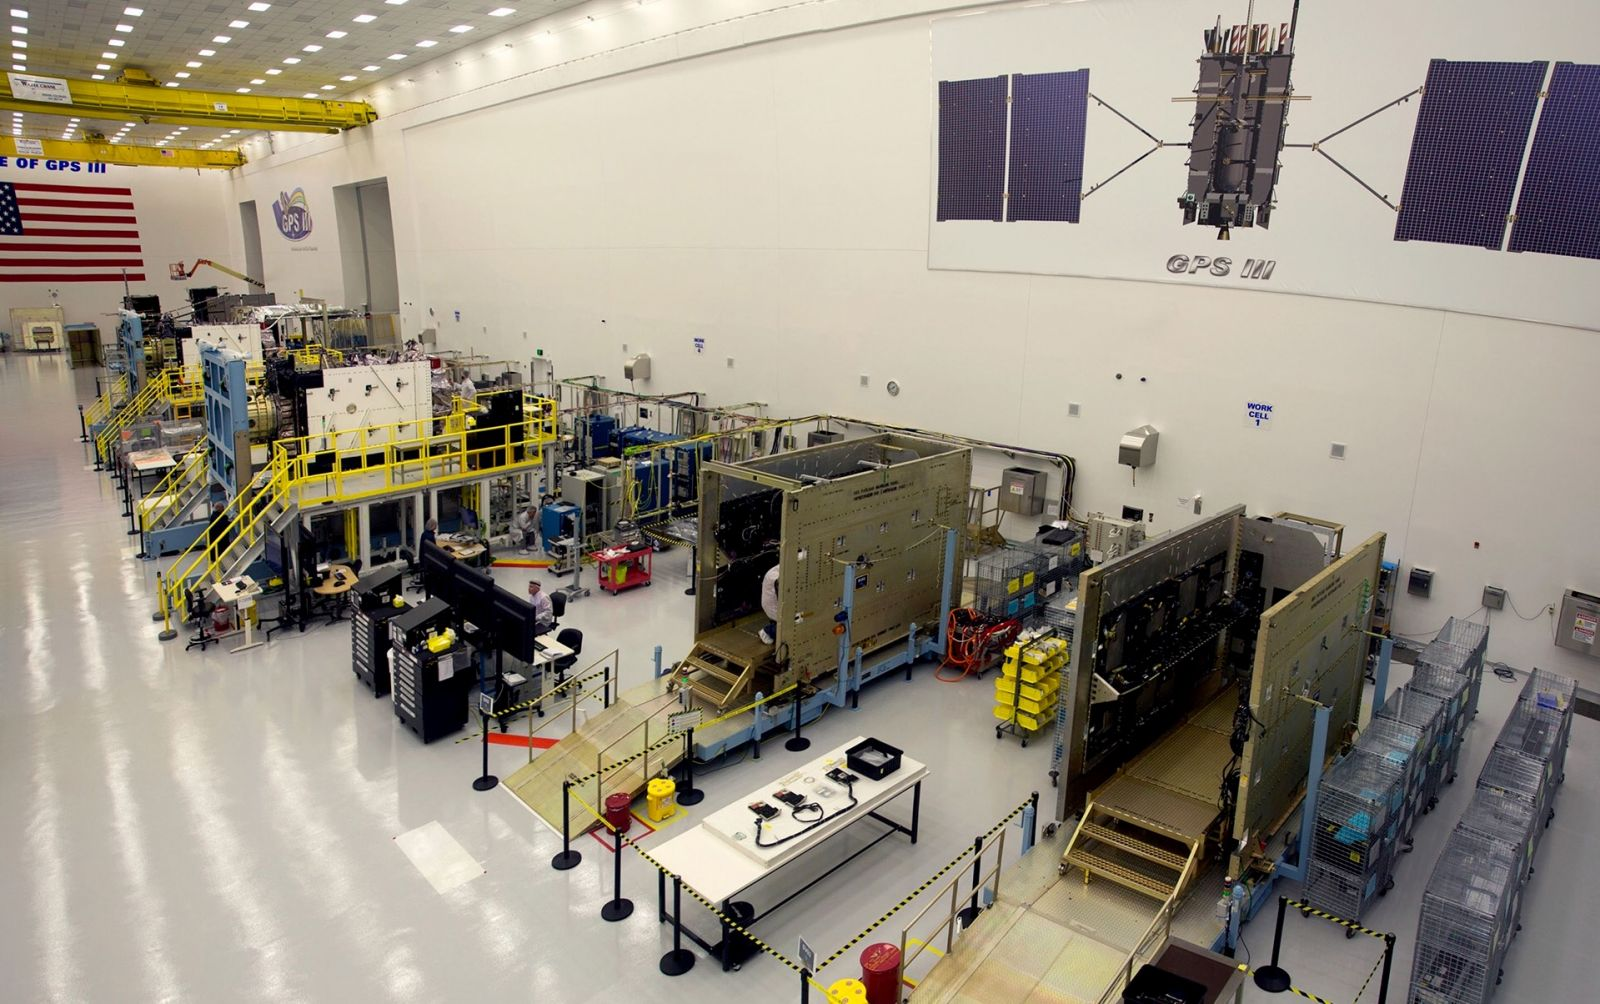 Multiple GPS III satellites in production at Lockheed Martin's GPS III Processing Facility near Denver, Colorado. Image credit: Lockheed Martin